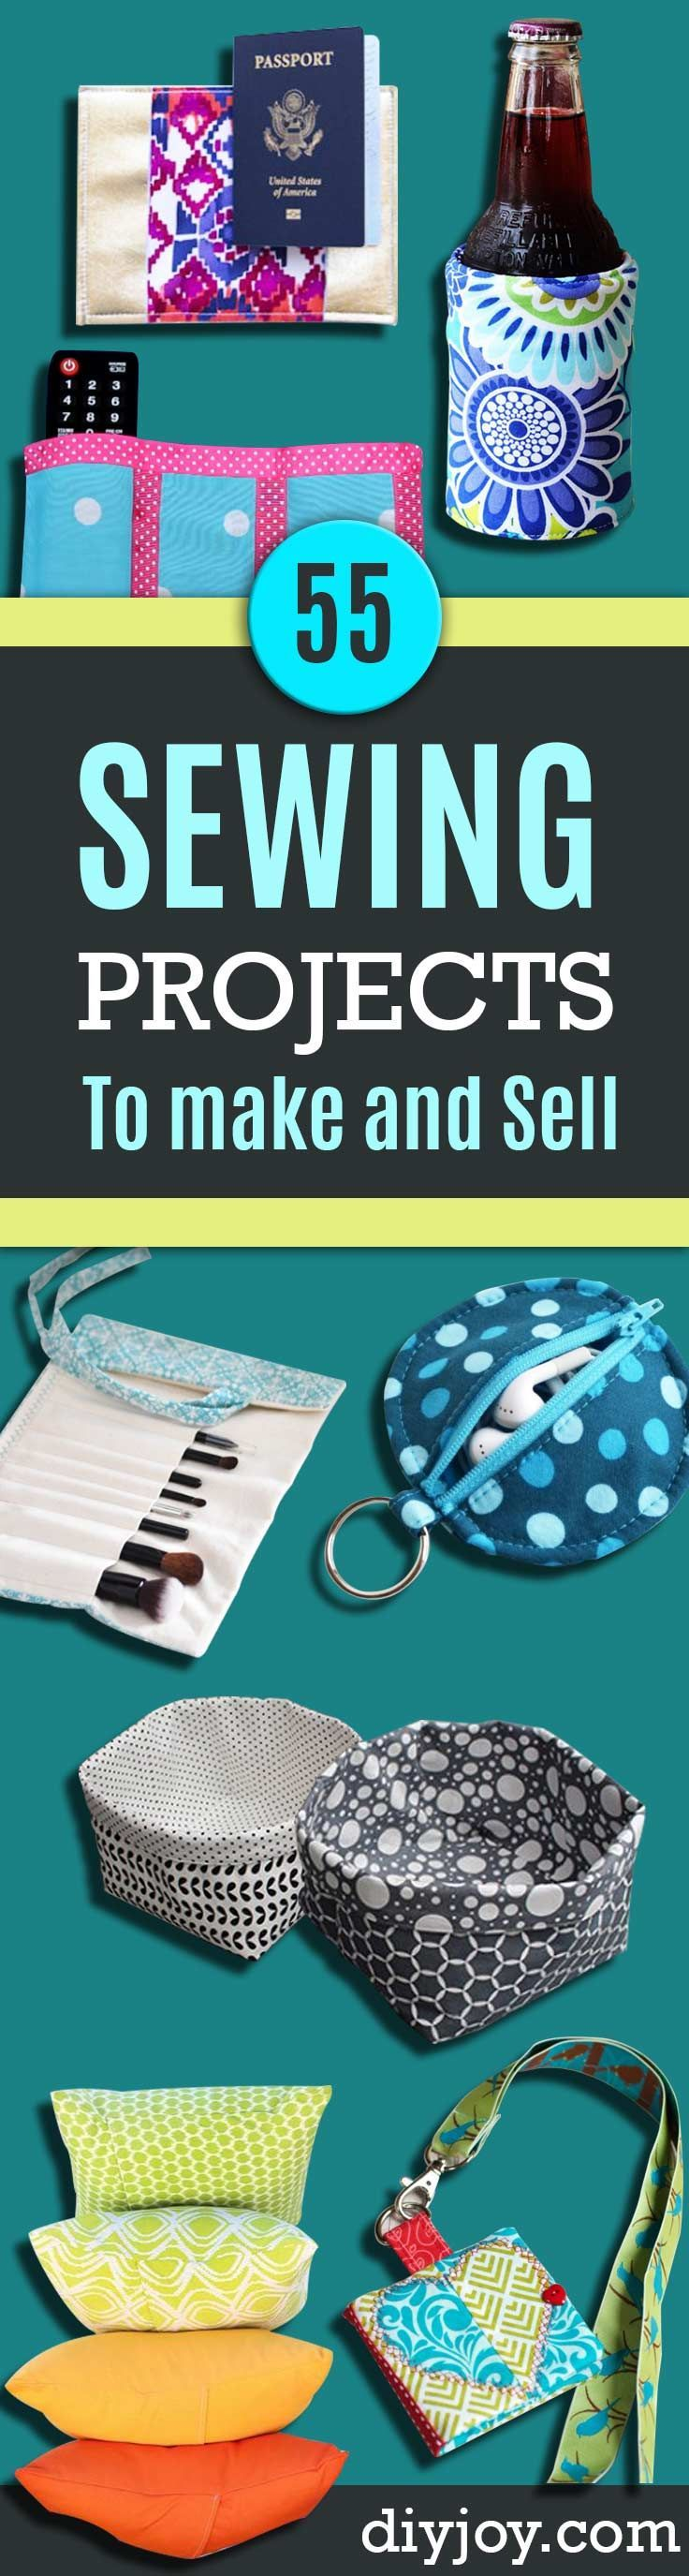 55 sewing projects to make and sell patterns tutorials for Sewing projects to make and sell